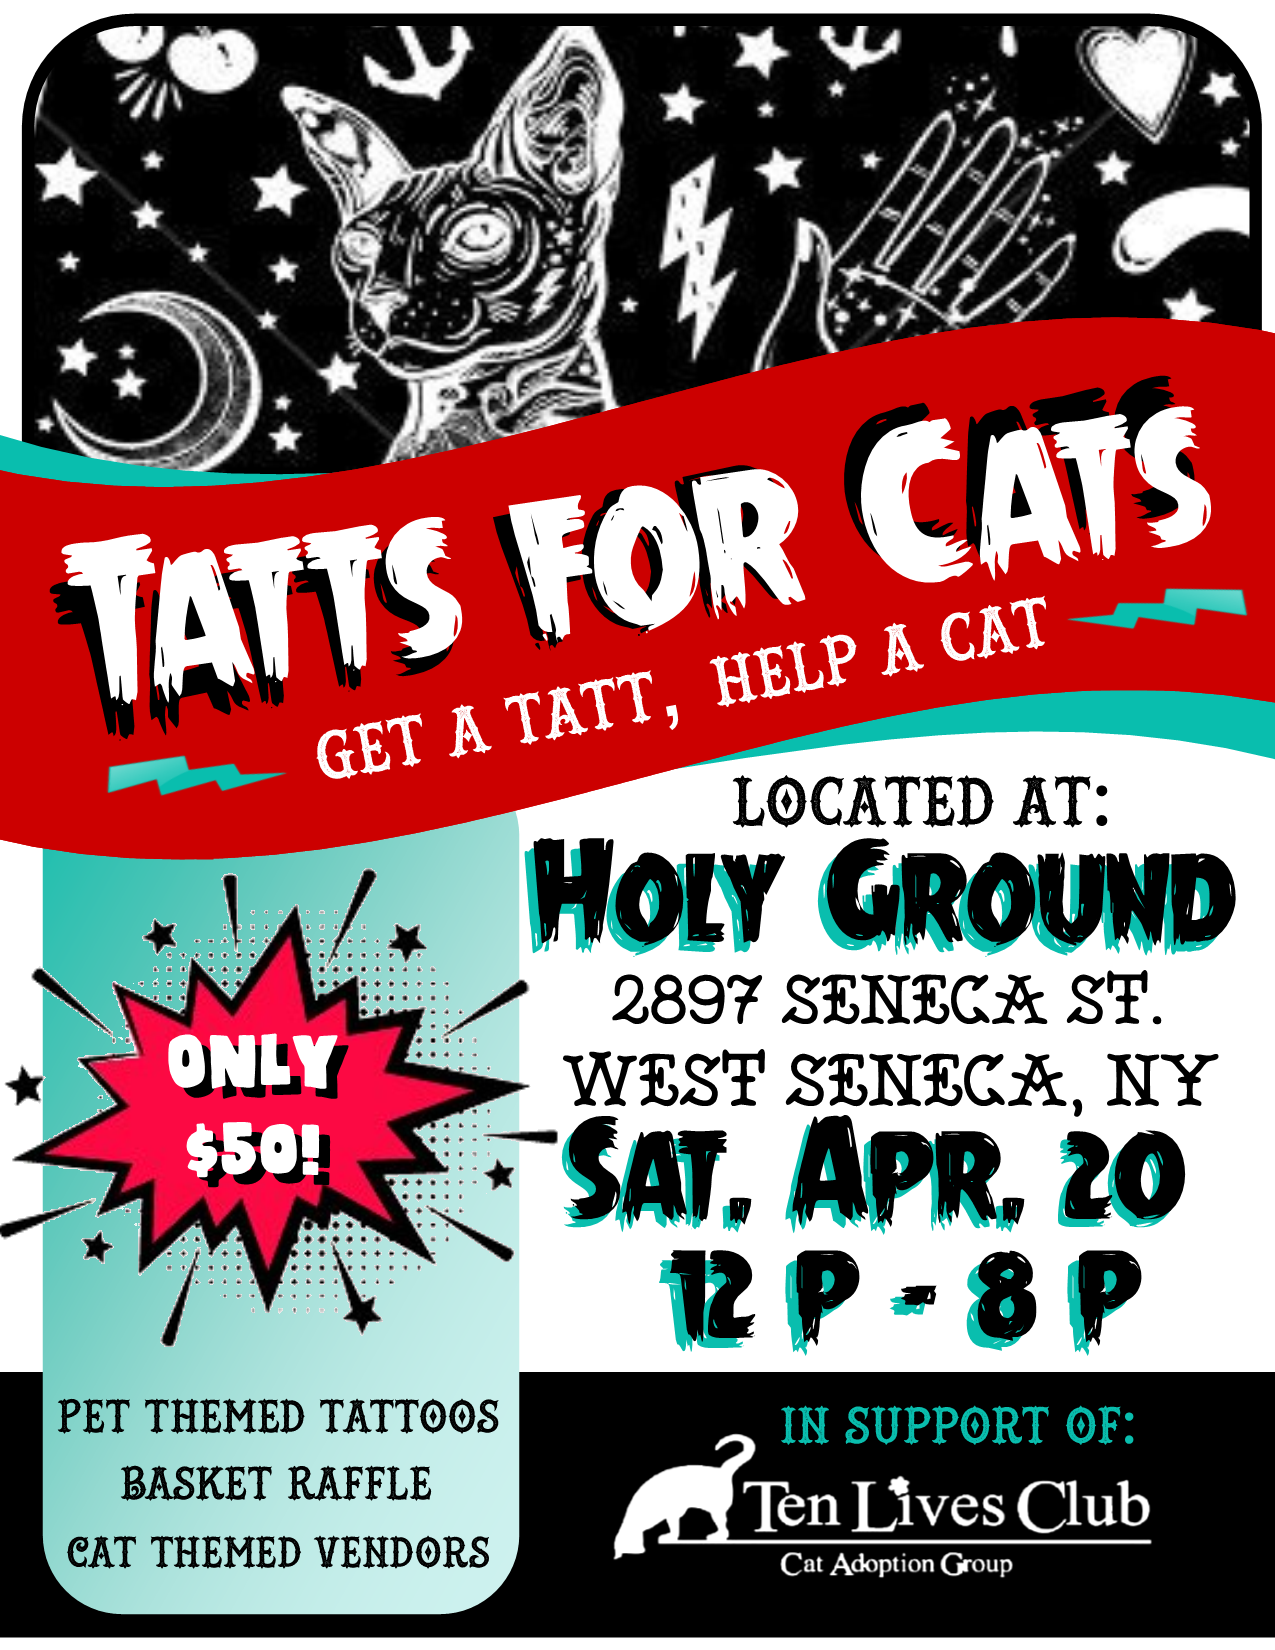 Tatts for Cats Flyer.png